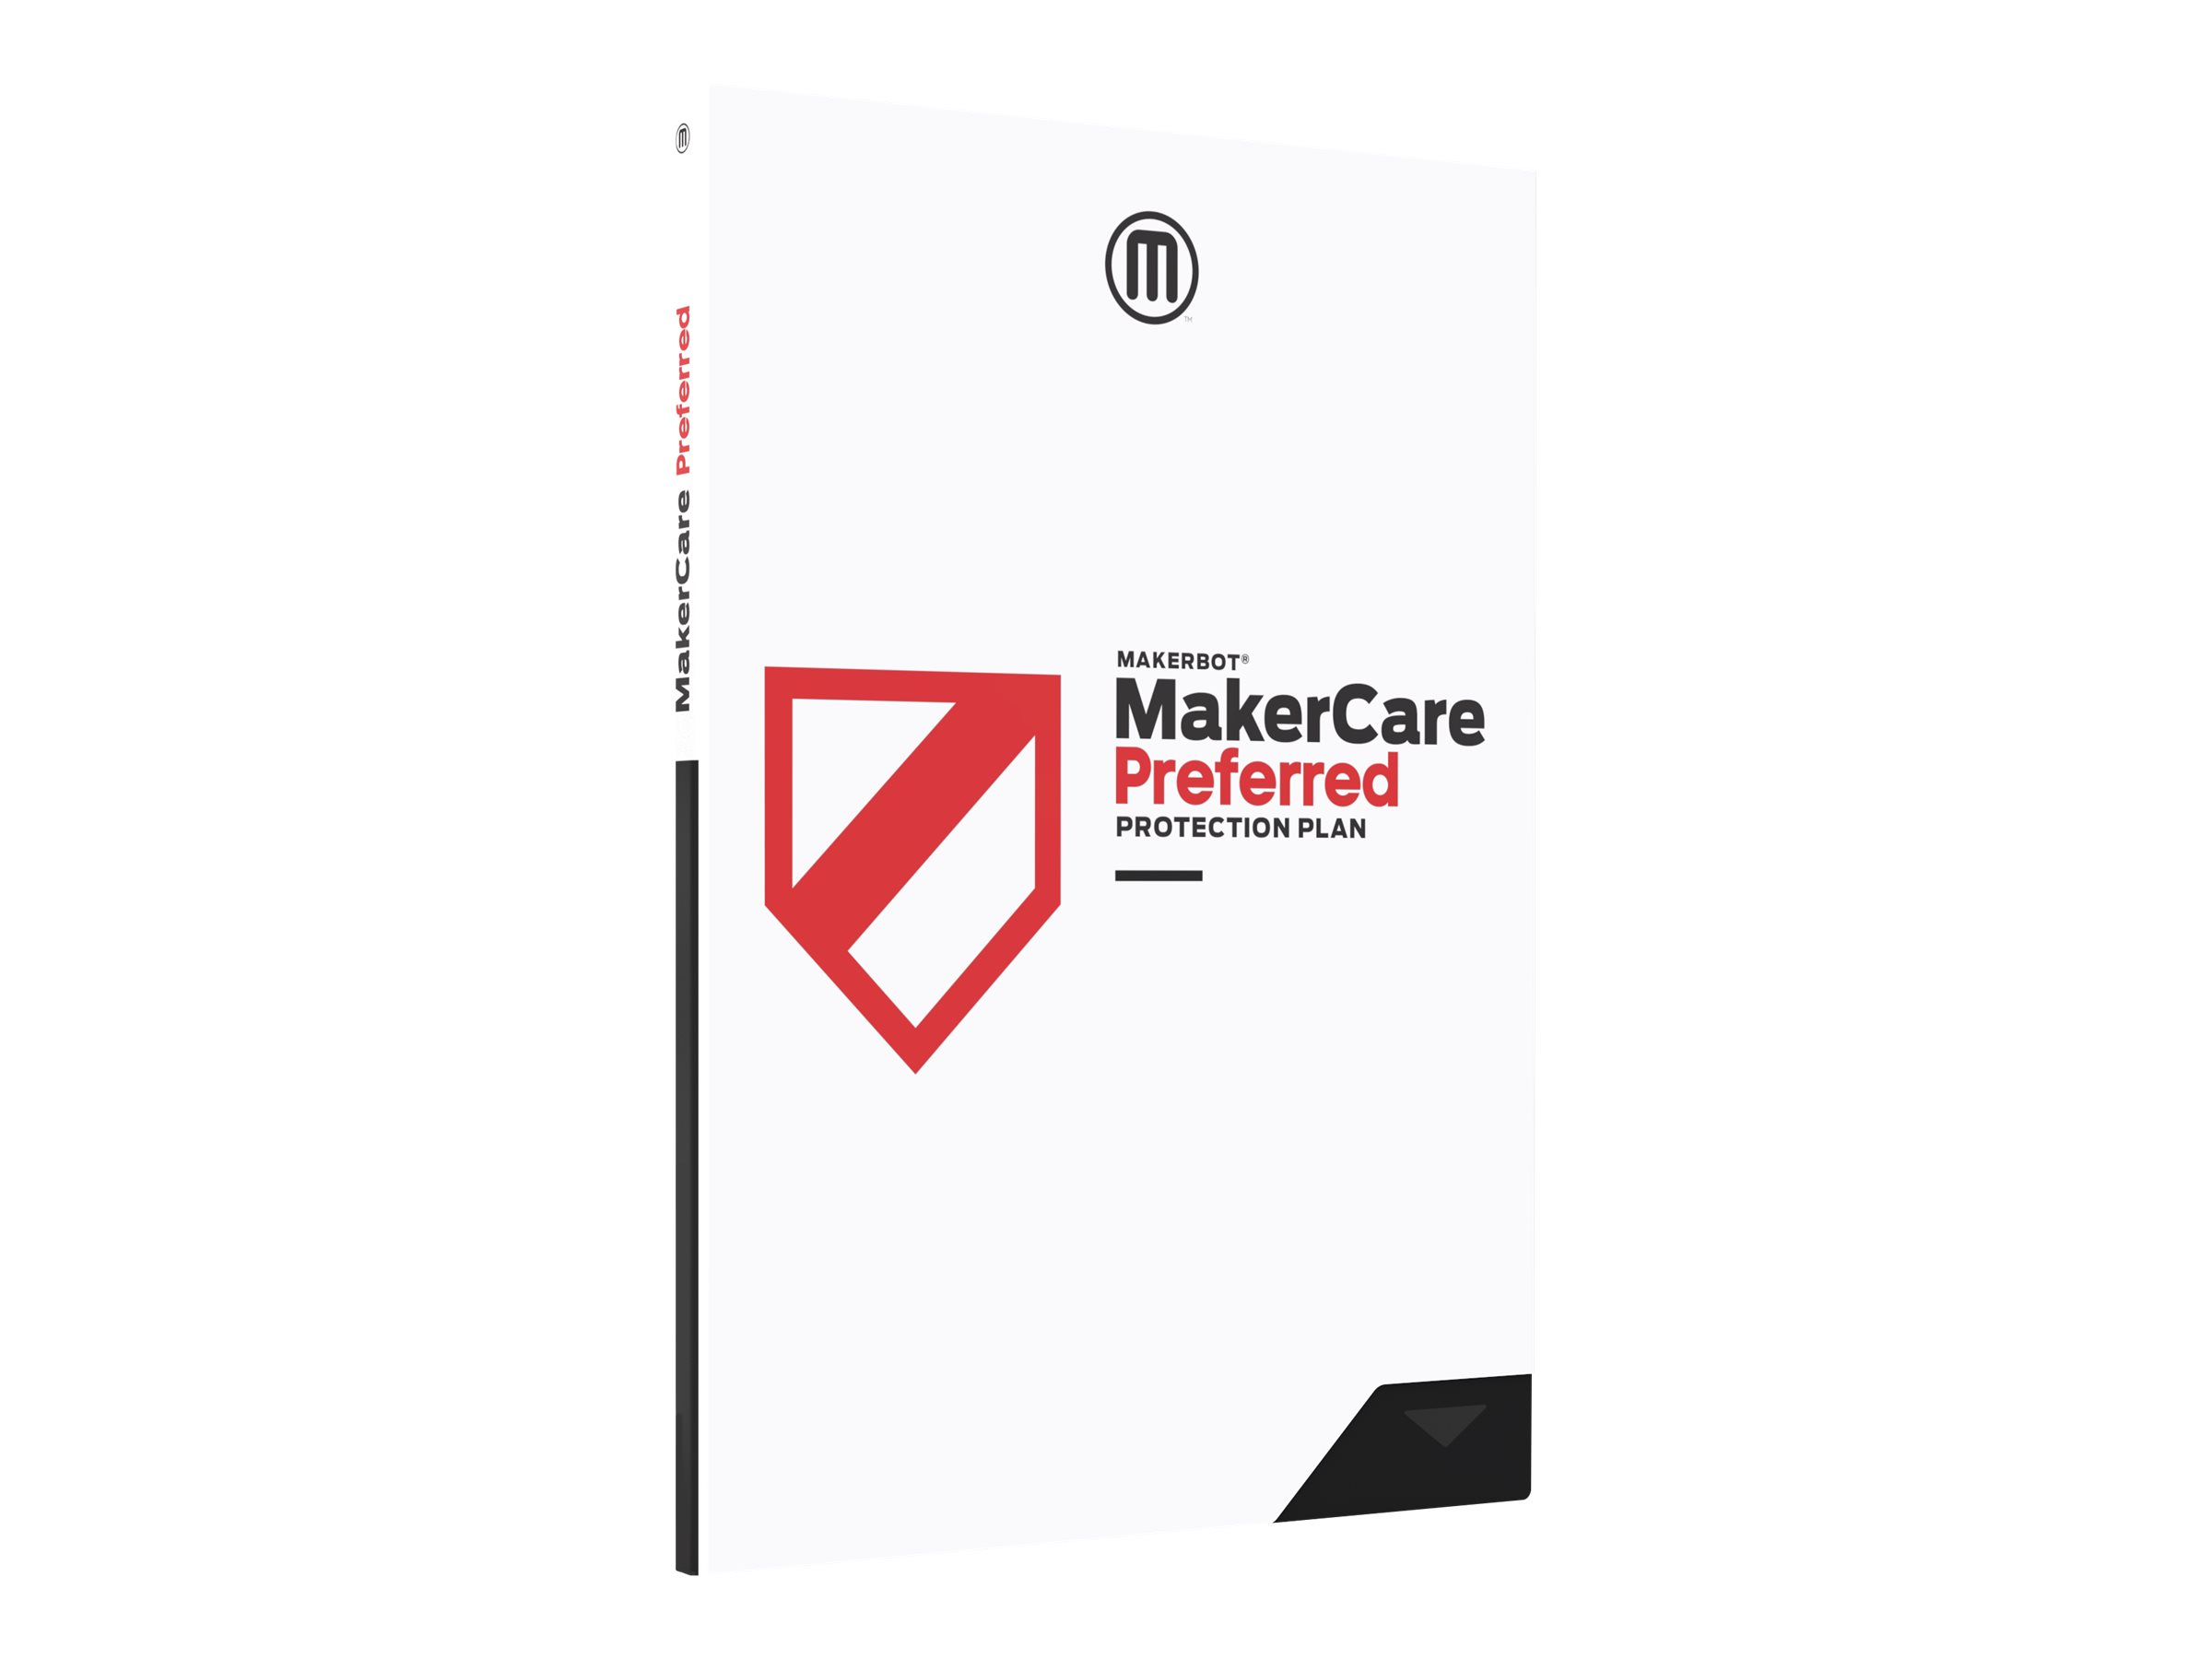 MakerBot MakerCare Protection Plan Preferred - extended service agreement - 1 year